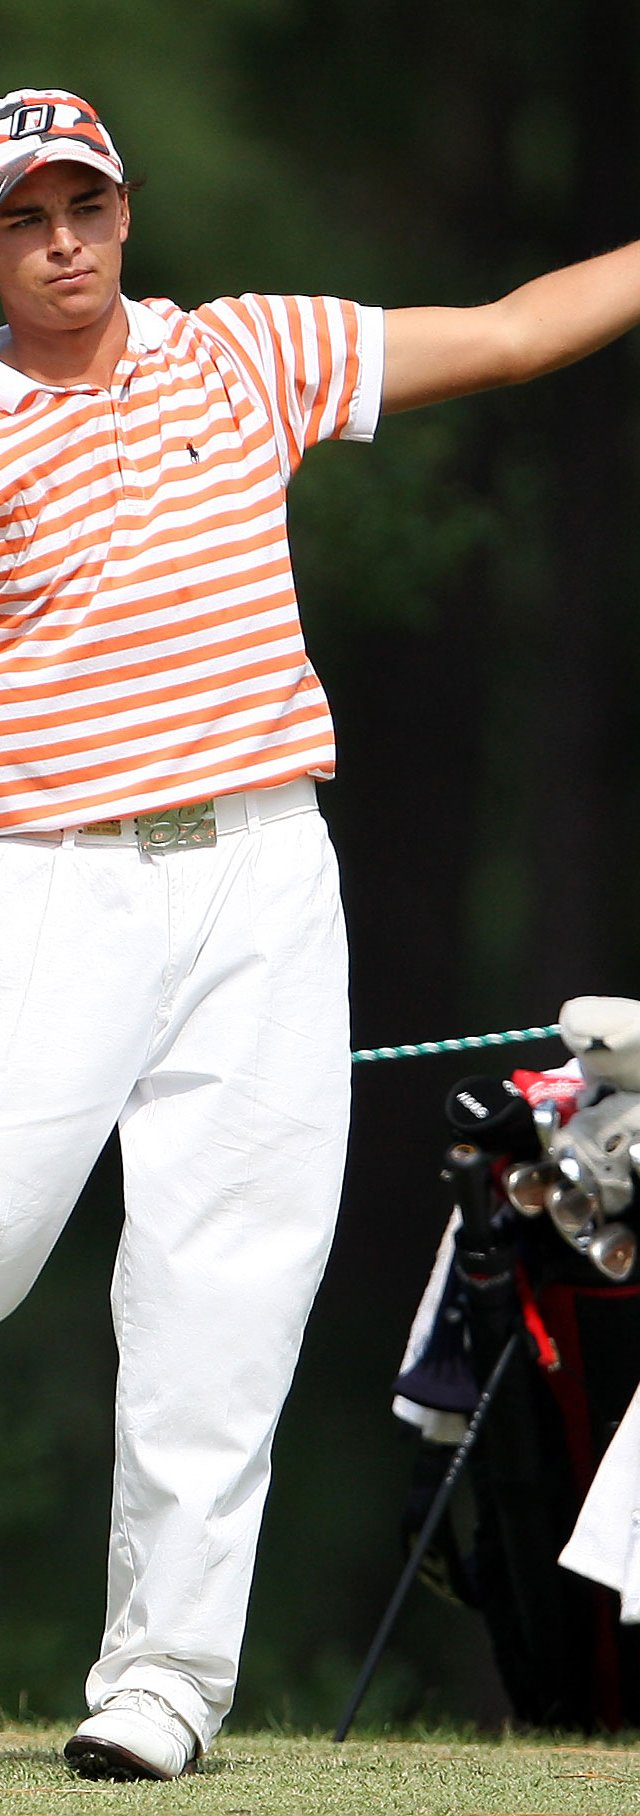 Oklahoma State's Rickie Fowler opened with a 3-over 75 at the NCAA South regional.